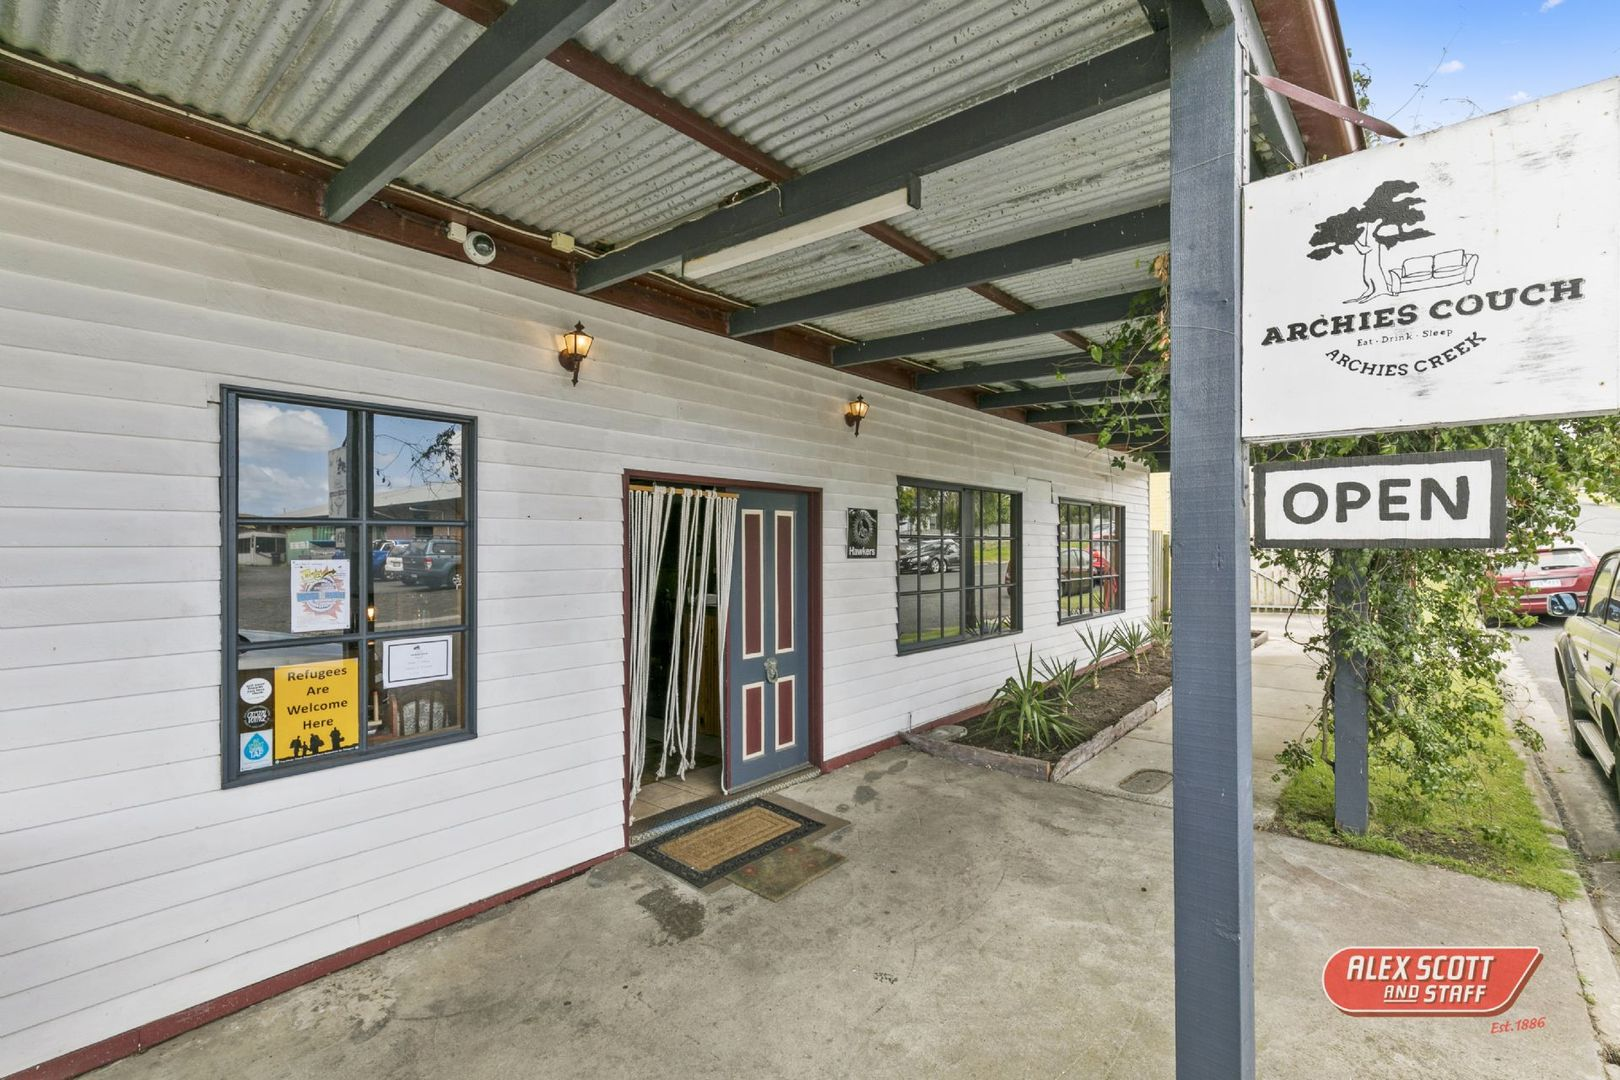 89-91 ARCHIES CREEK ROAD, Archies Creek VIC 3995, Image 1